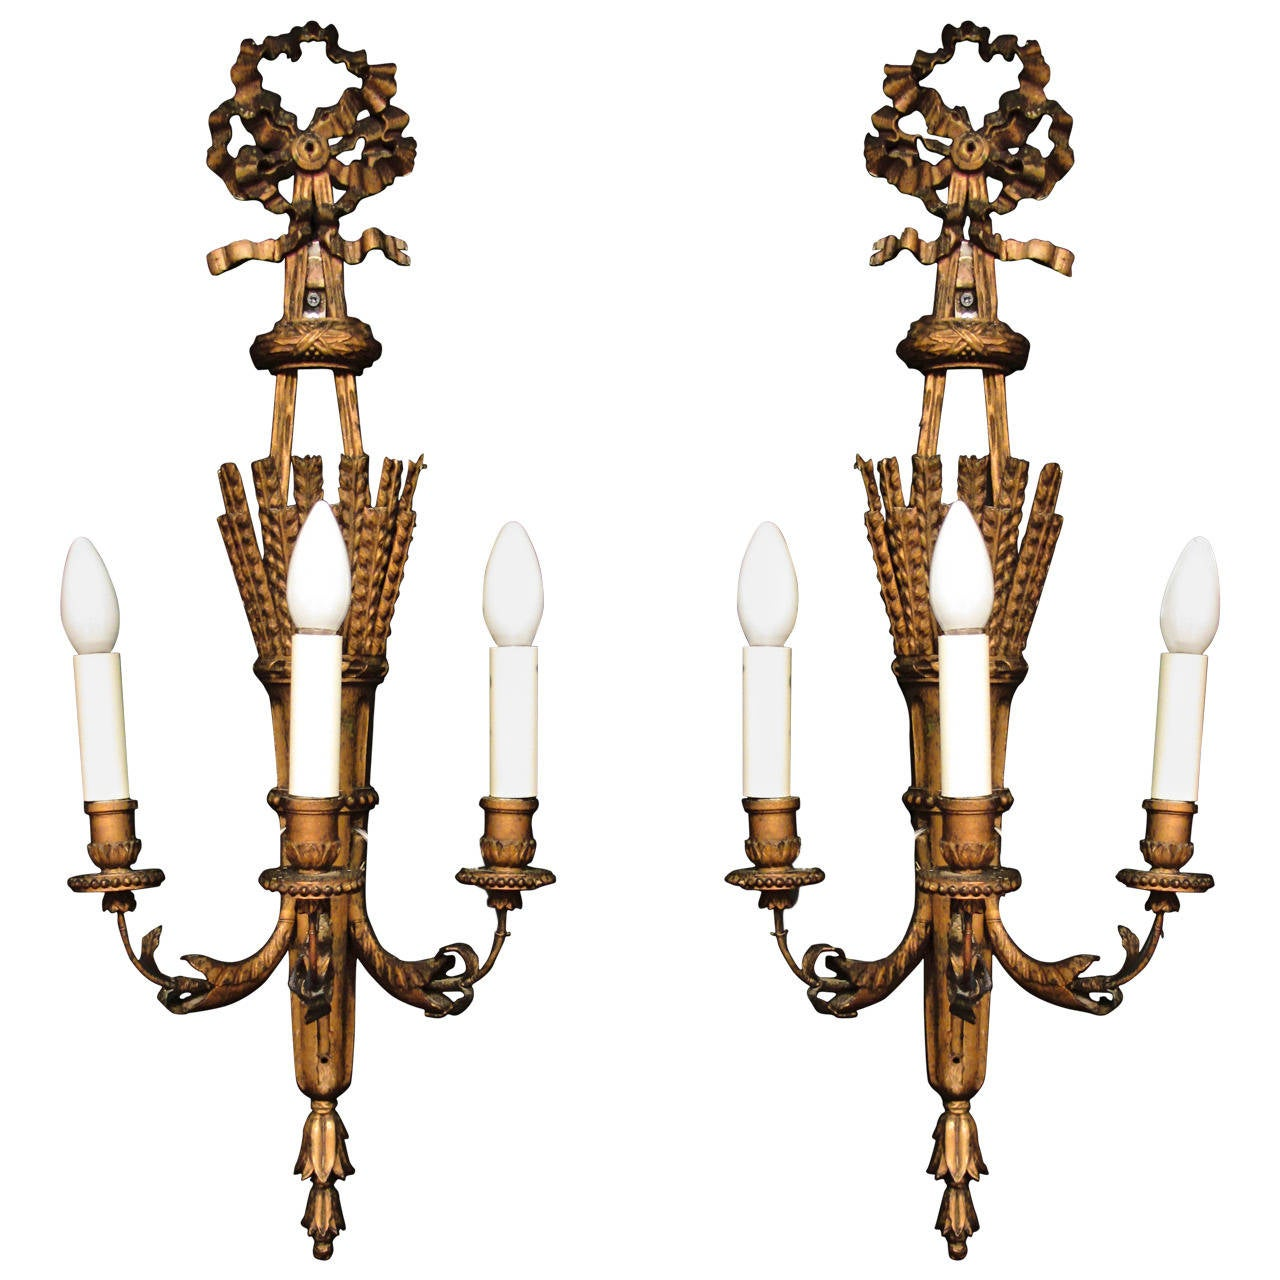 Pair of 19th Century Carved Wood Wall Appliques Sconces For Sale at 1stdibs